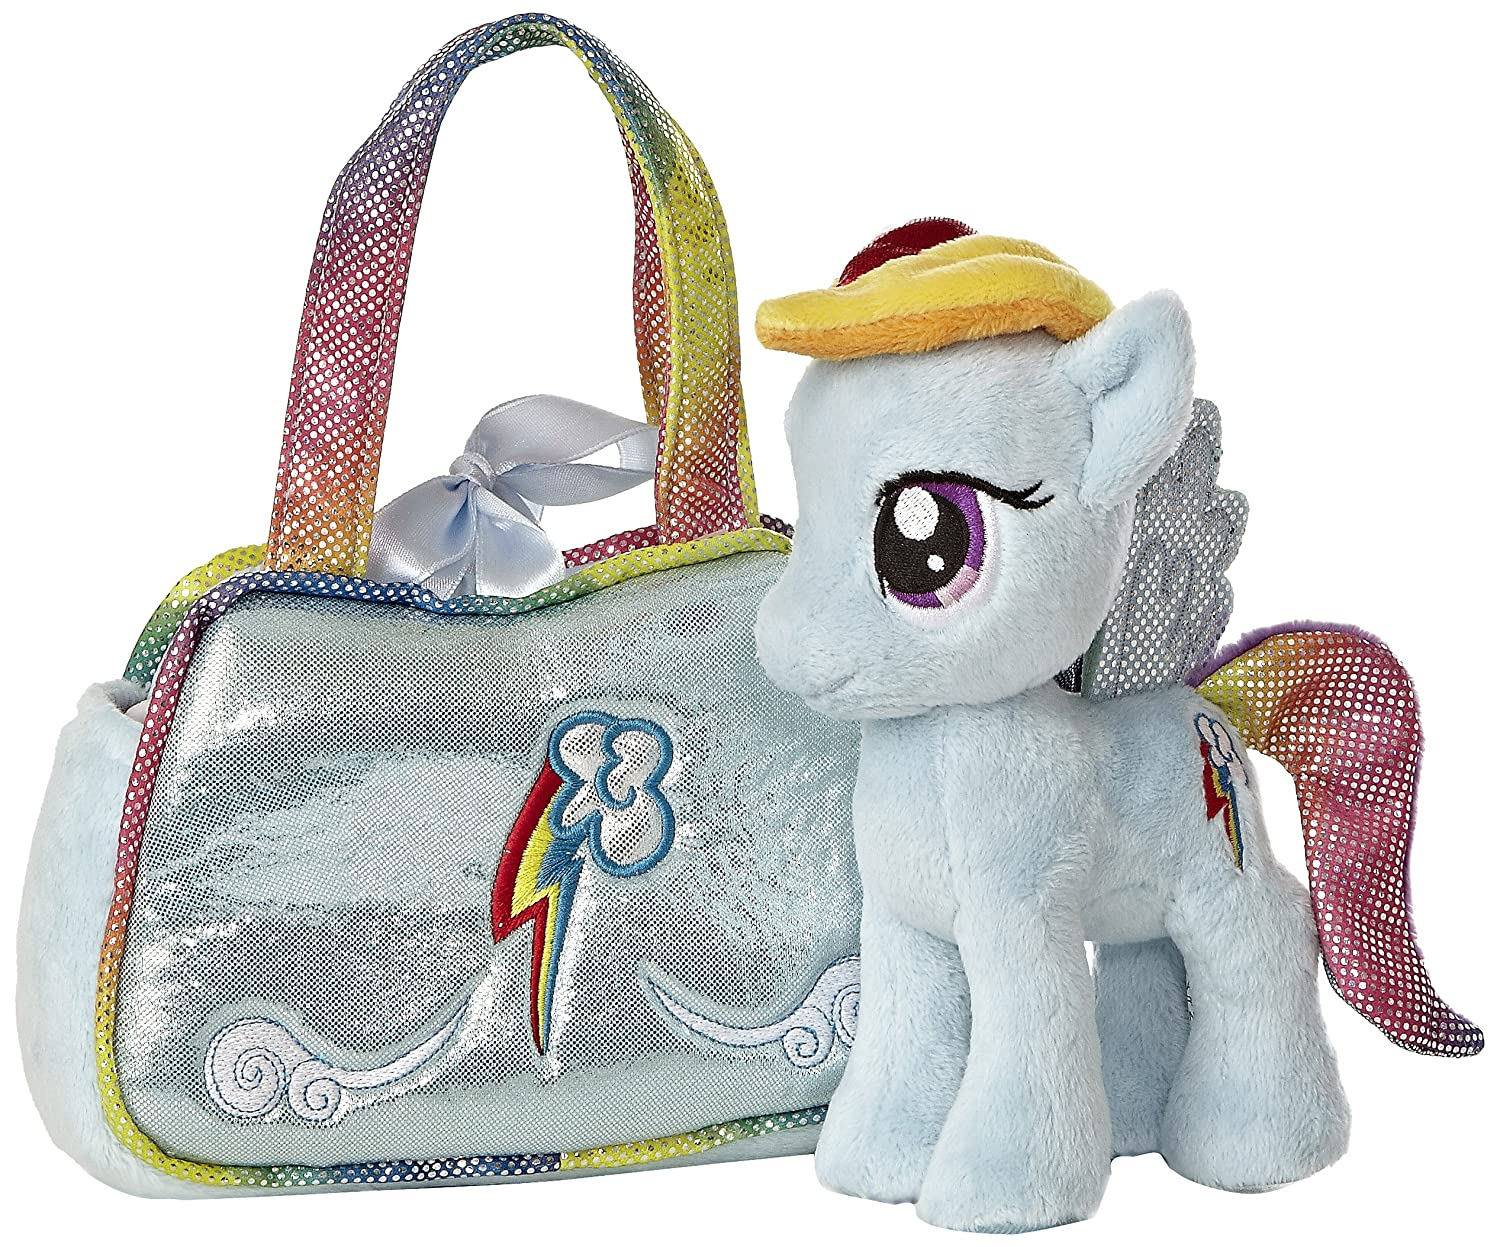 My Little Pony Friendship is Magic Cutie Mark Carrier Purse